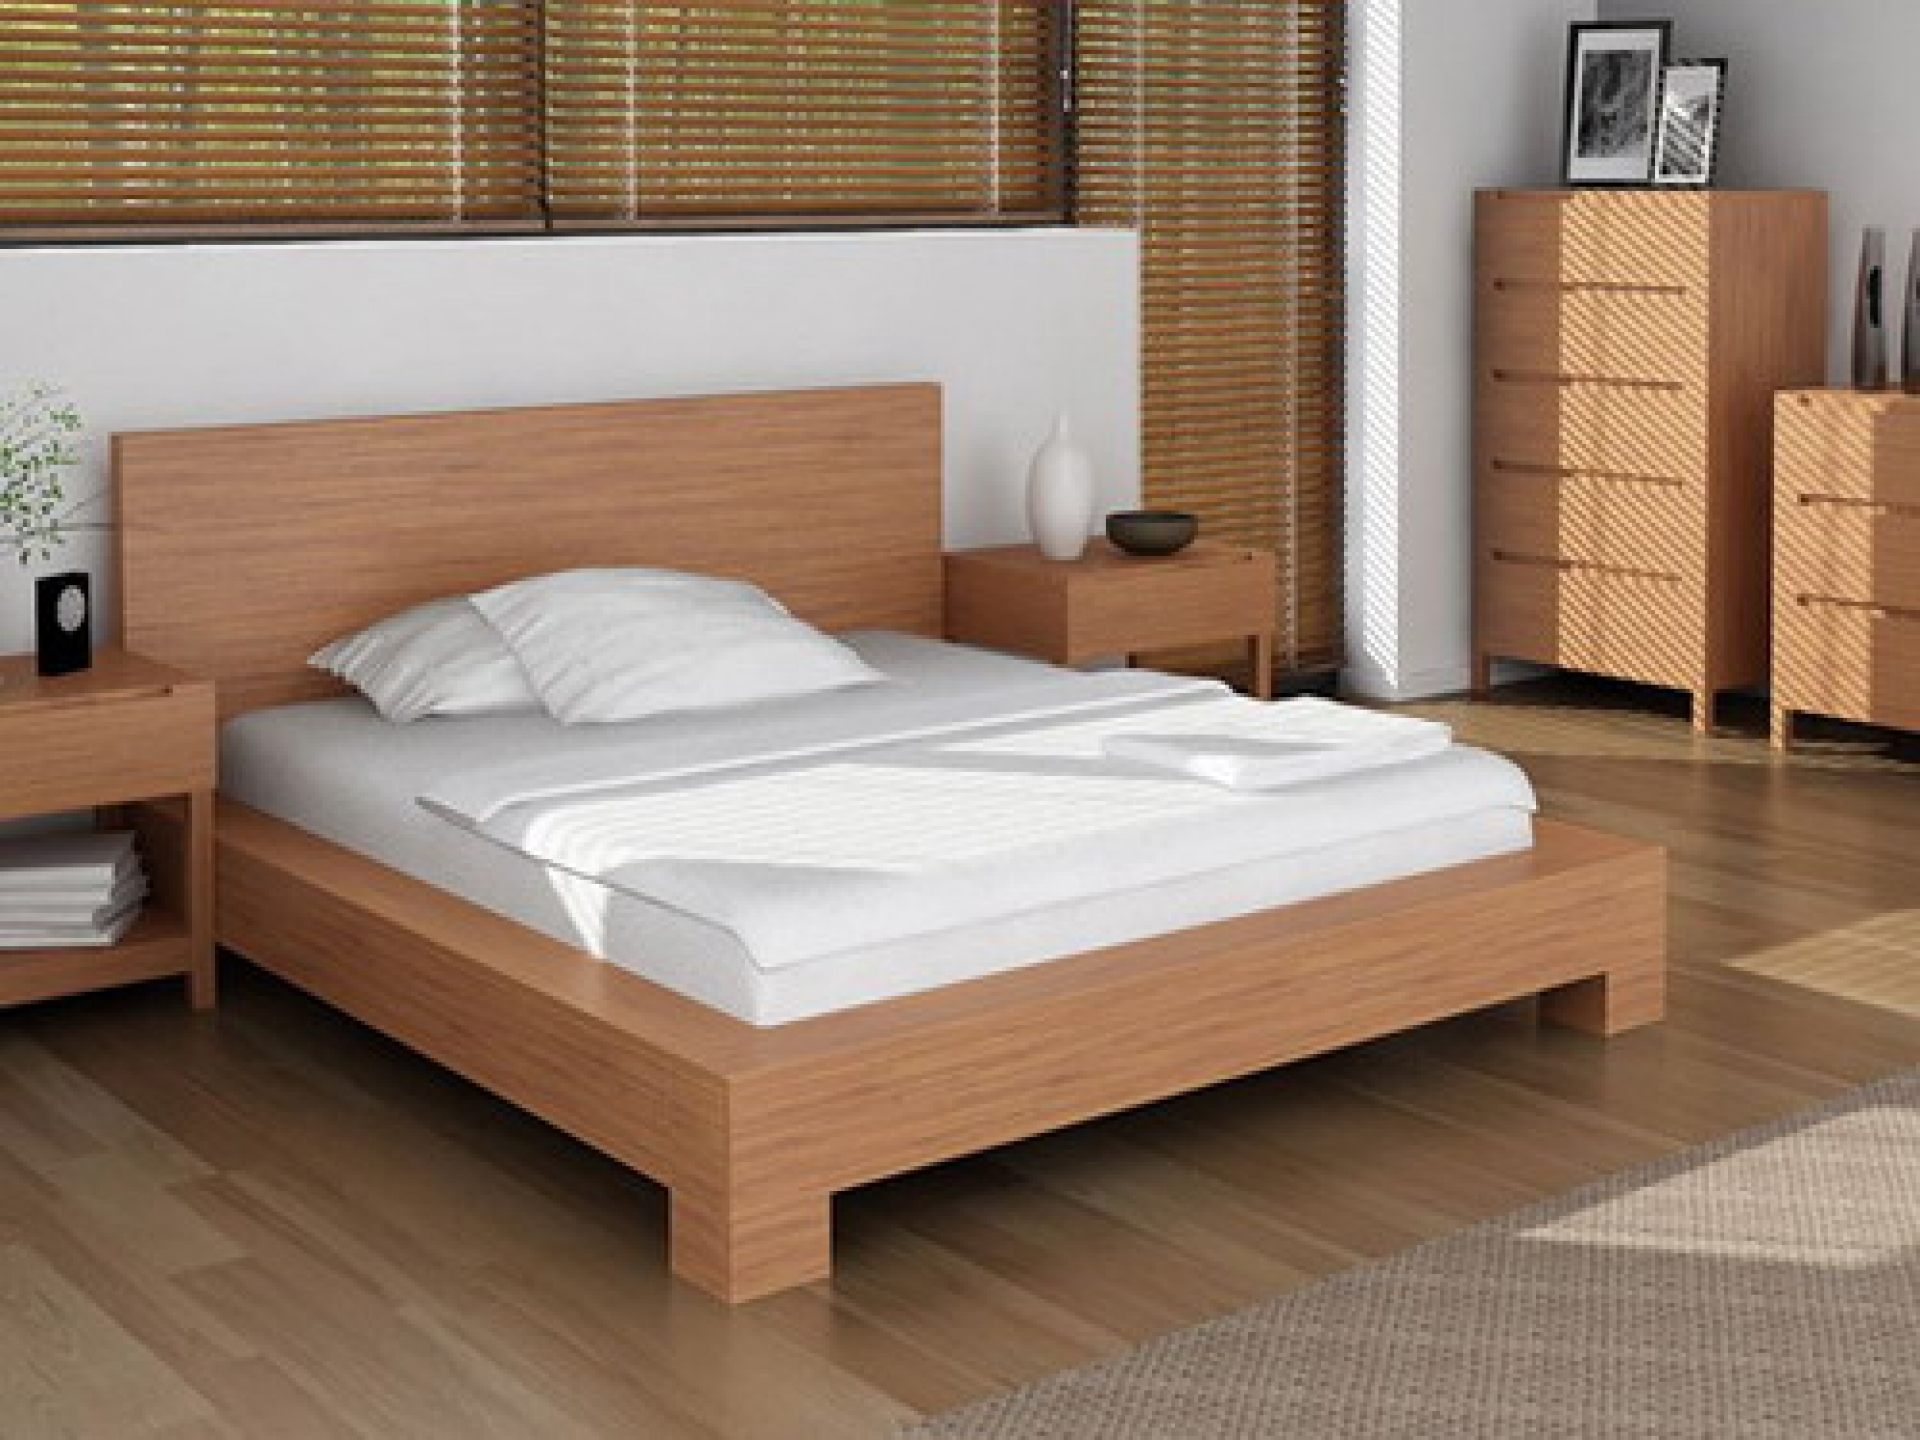 Simple wood bed frame ideas homesfeed for Bed styling ideas